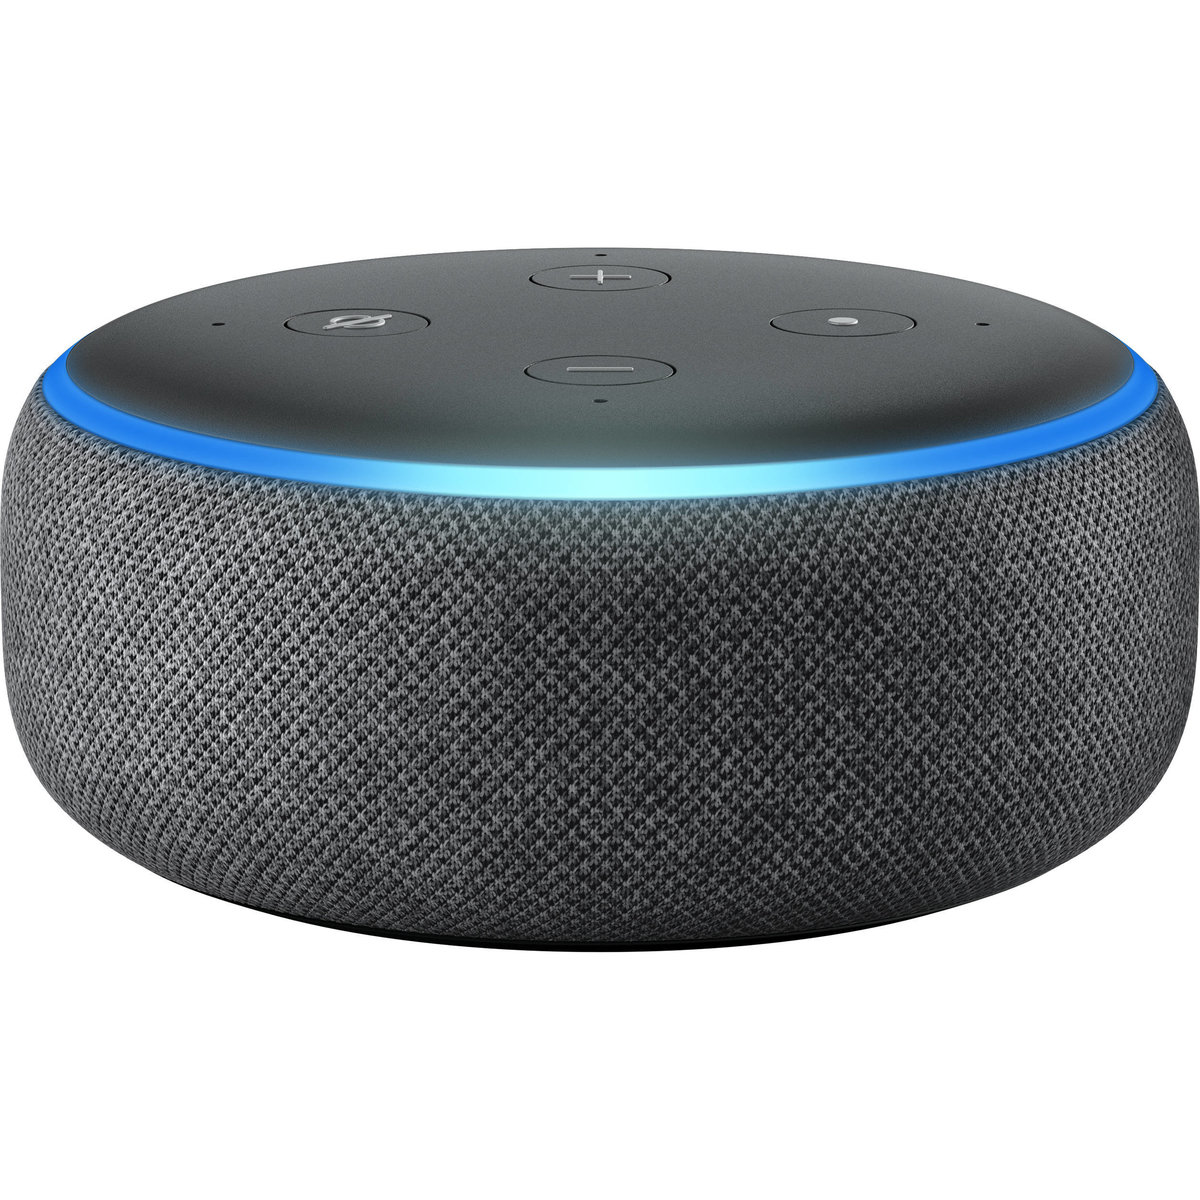 Echo Dot 3nd SmartSpeaker with Alexa Voice Control Black - parallel import